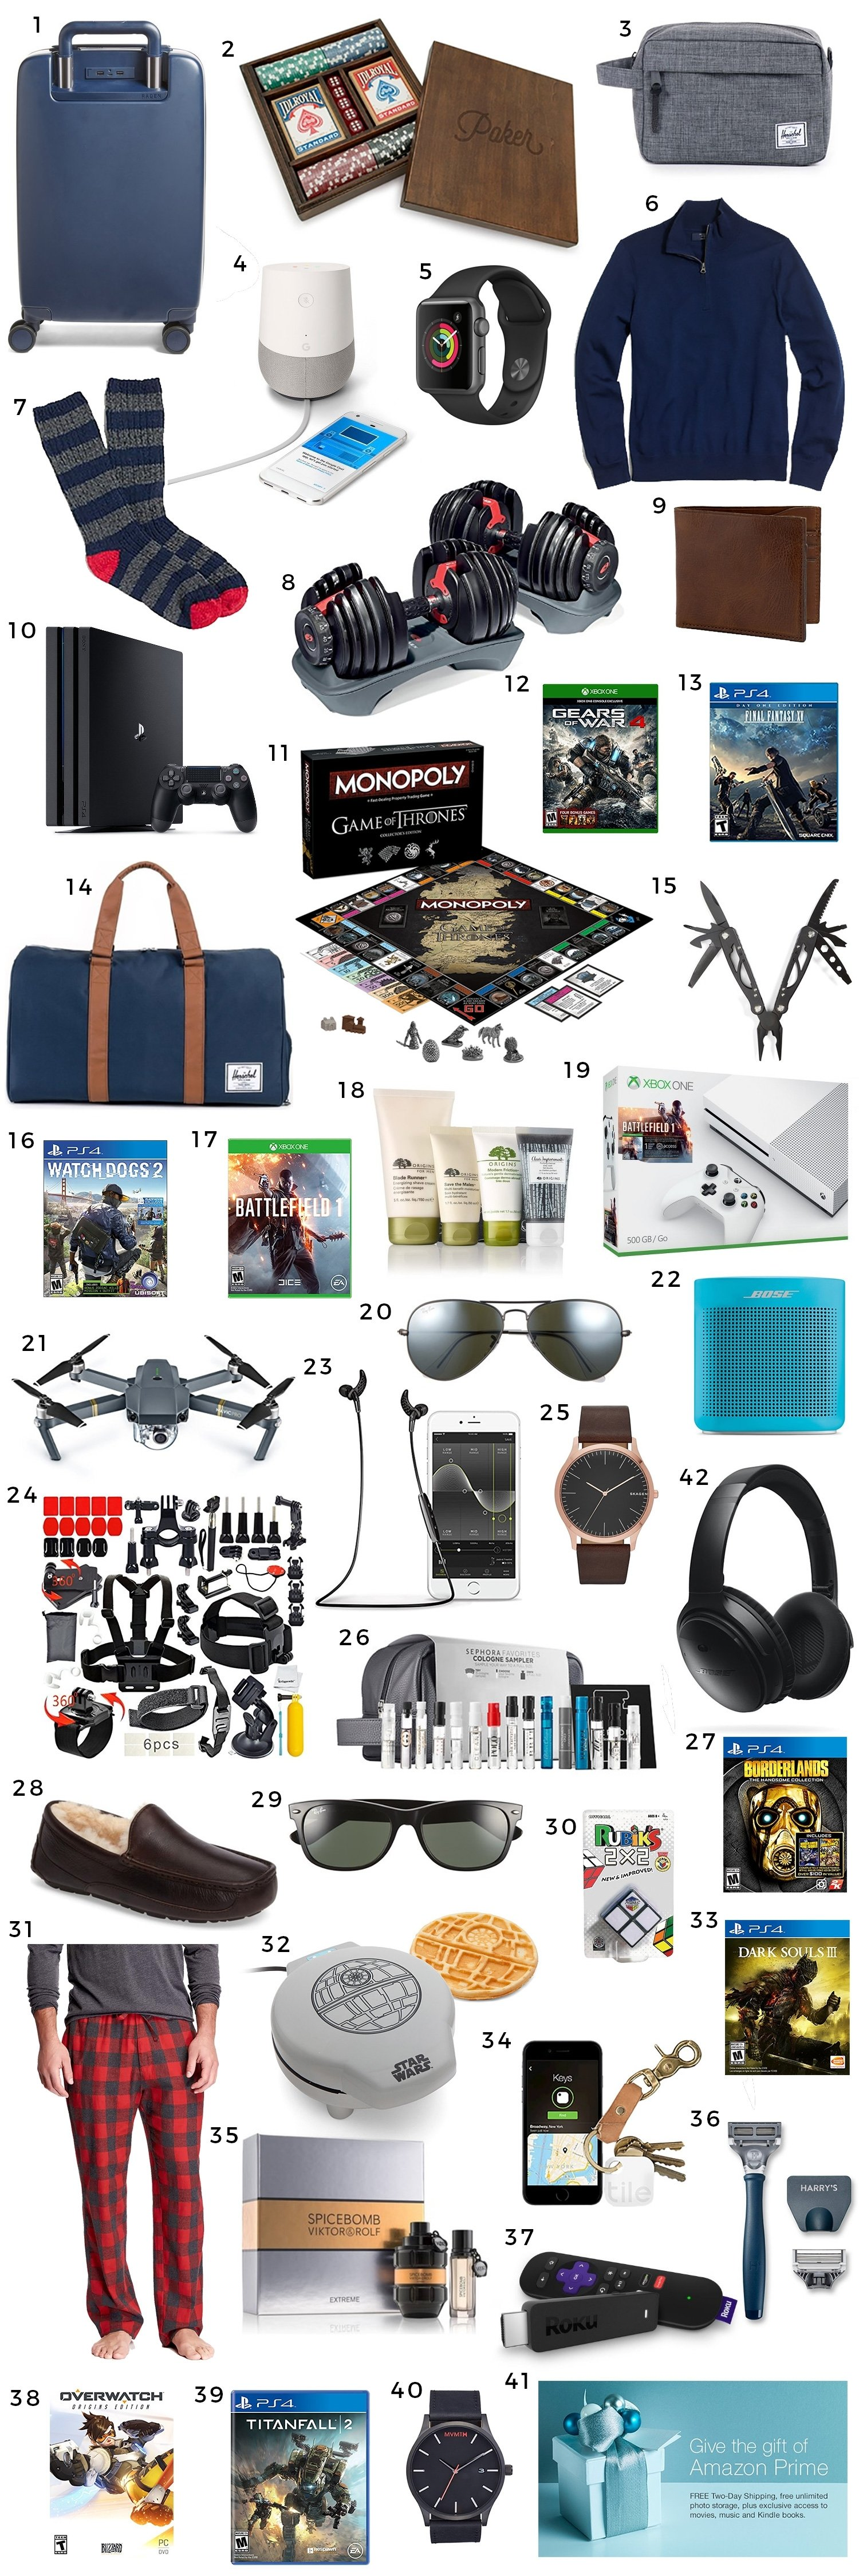 10 Most Popular Christmas Gift Idea For Men the best christmas gift ideas for men ashley brooke nicholas 8 2020